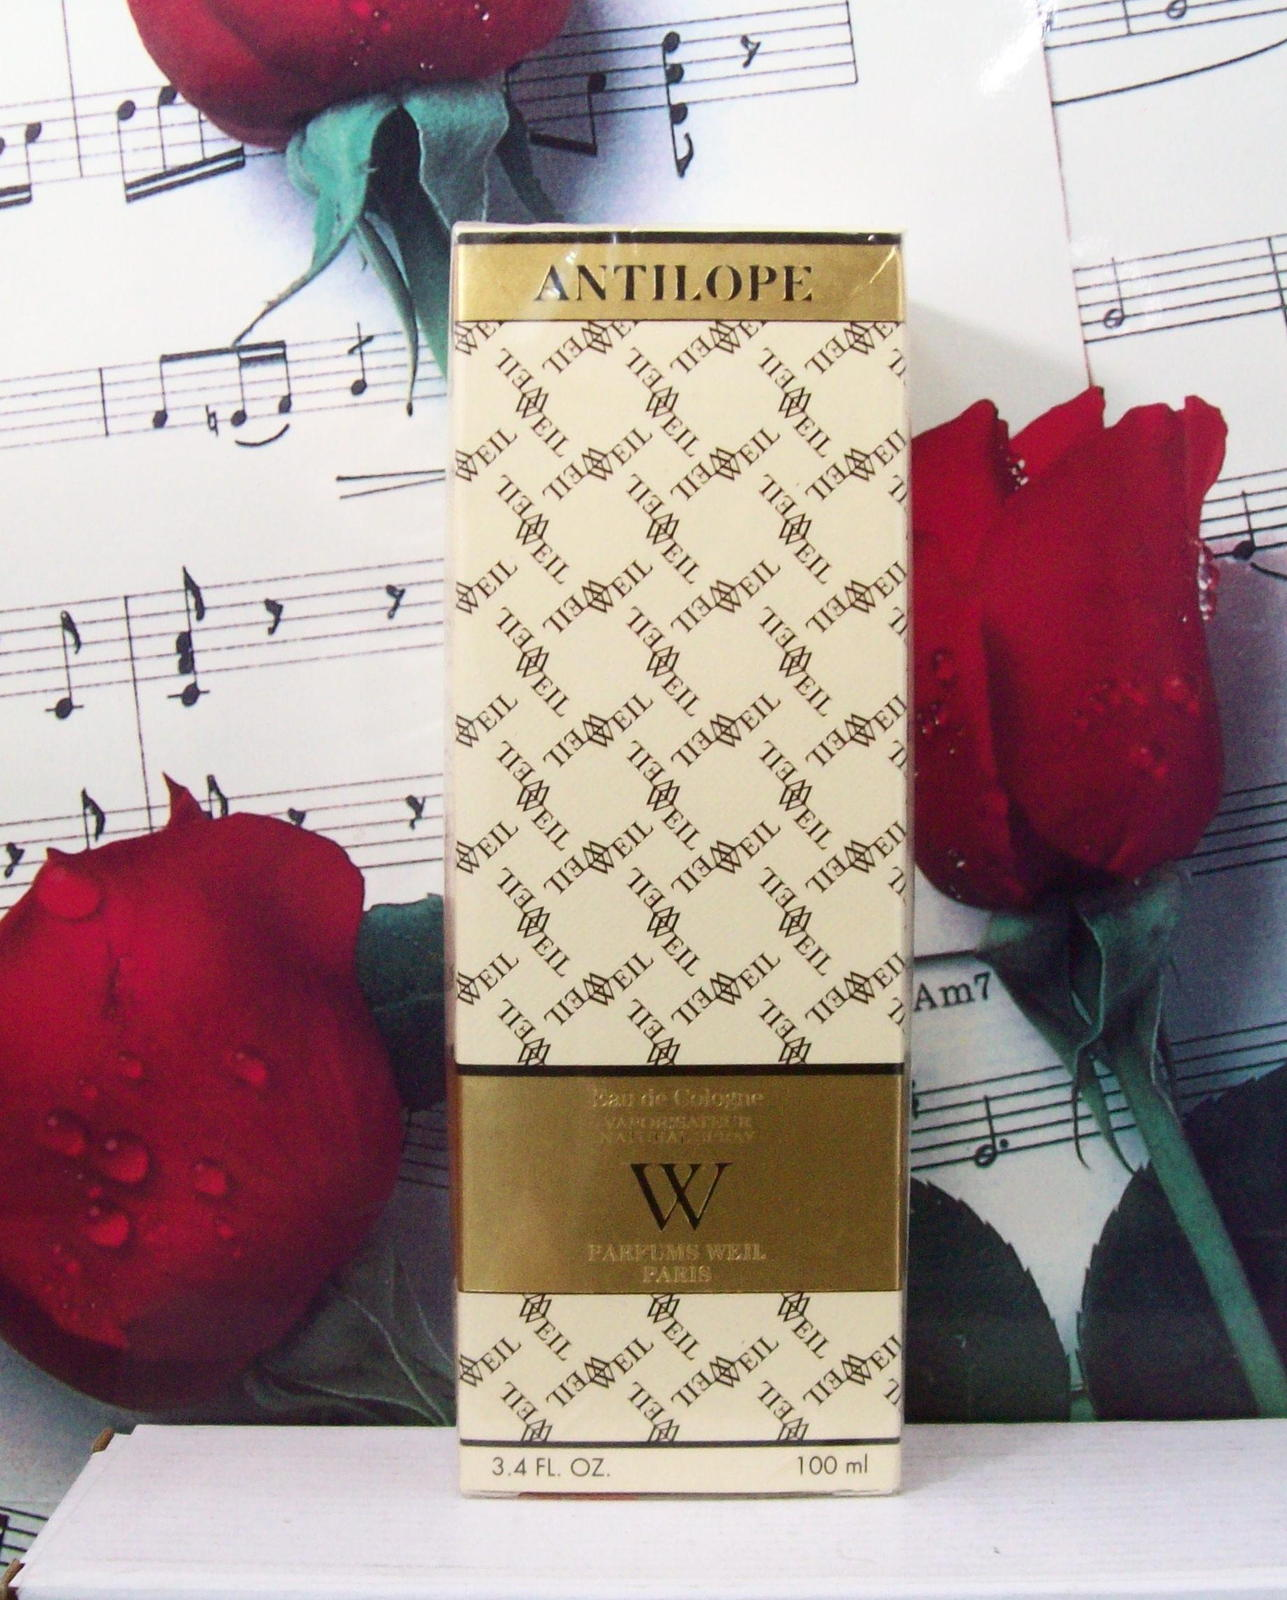 Antilope By Weil Cologne Spray 3.4 FL. OZ. - $59.99